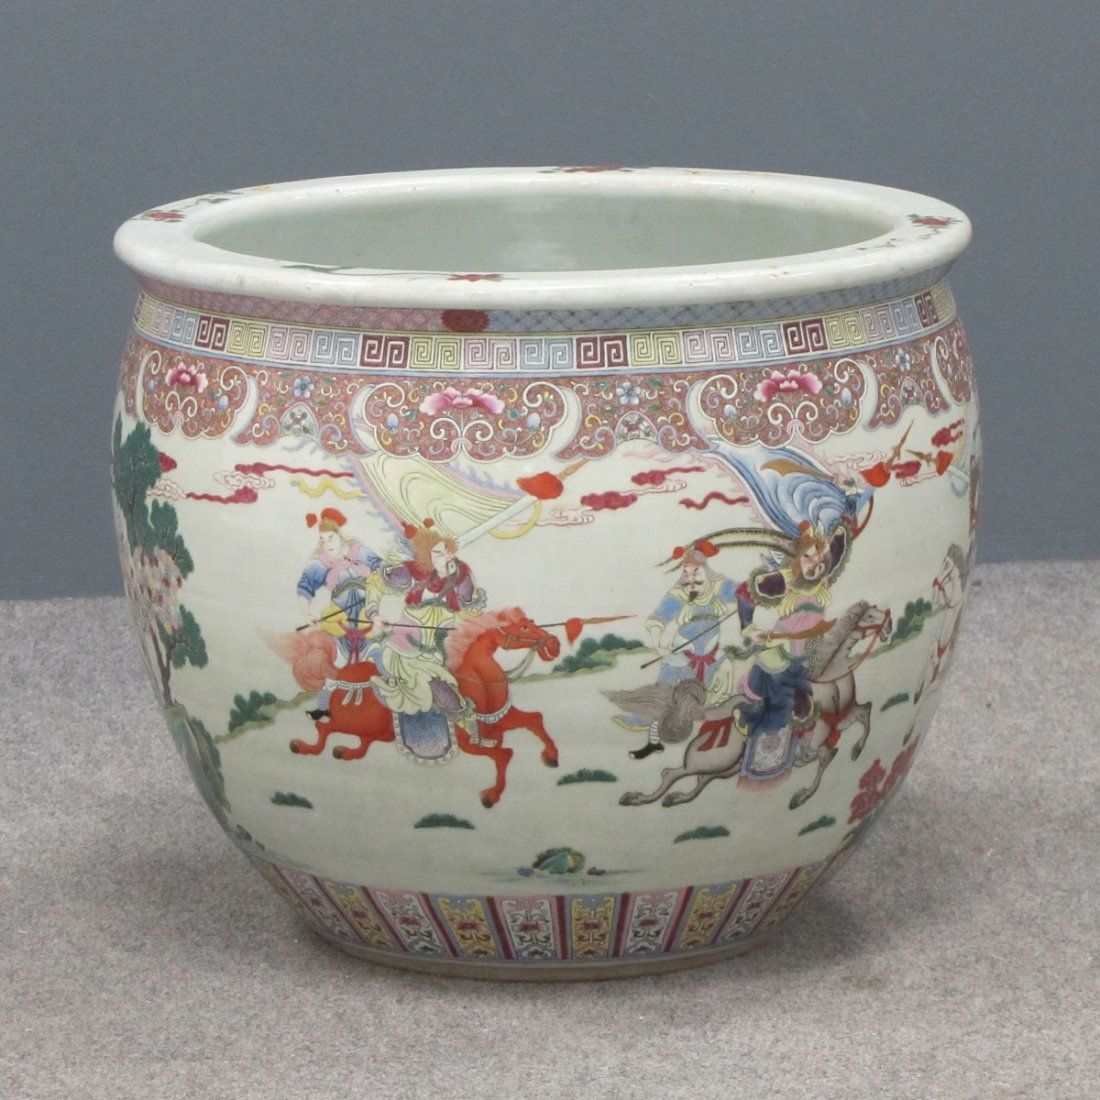 CHINESE FAMILLE ROSE DECORATED PORCELAIN FISH BOWL